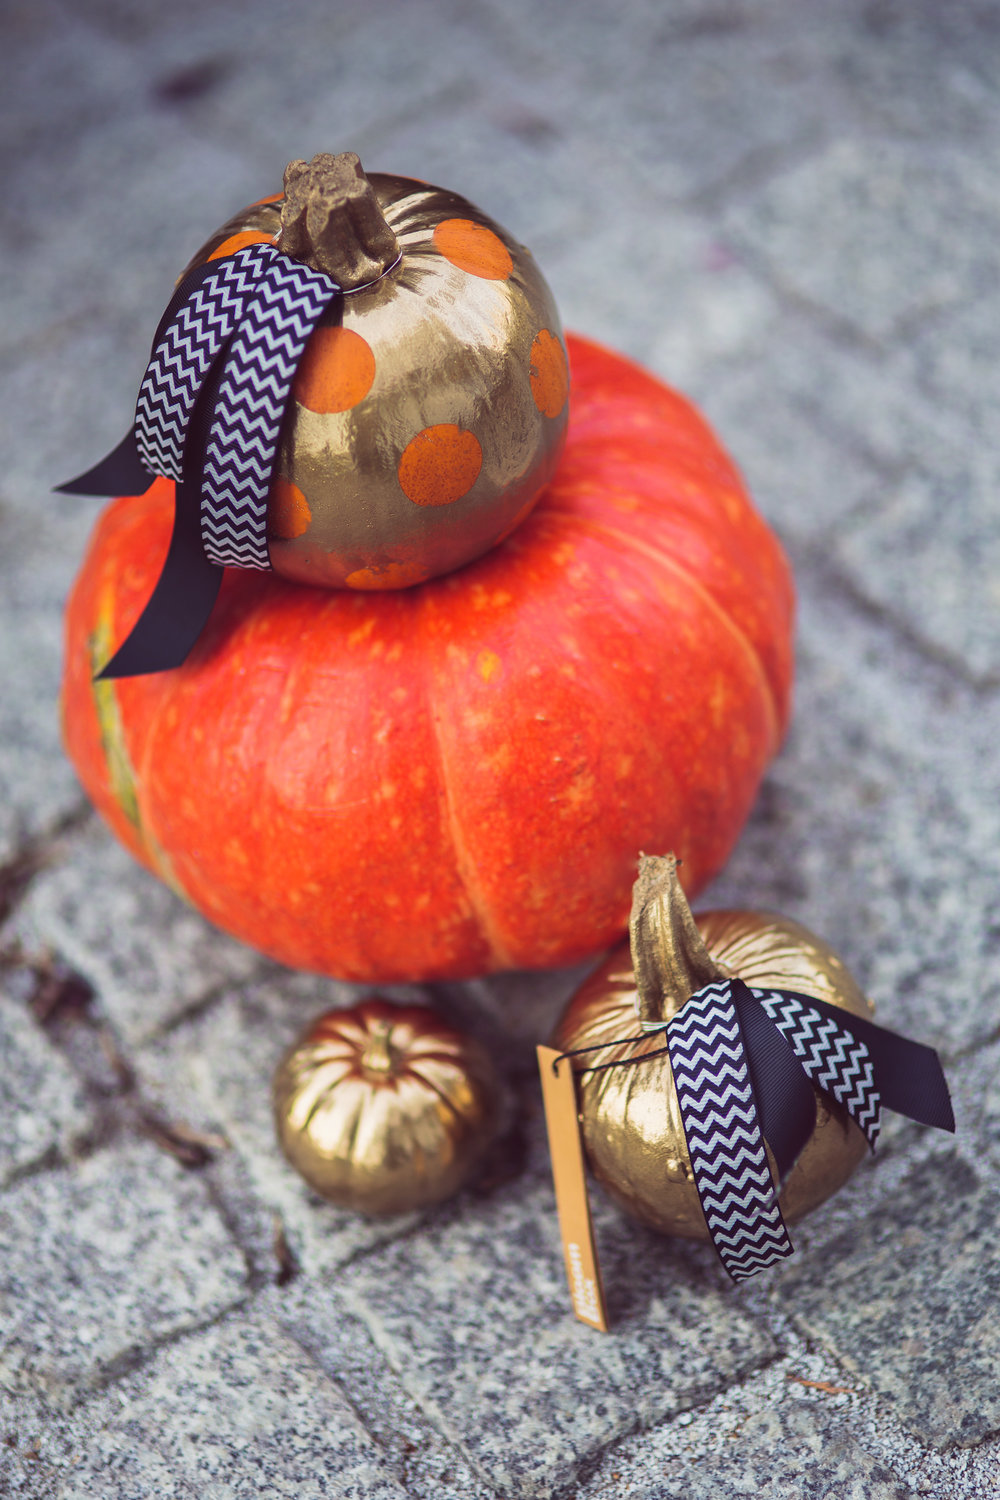 tie a ribbon around a pumpkin for a festive fall touch.